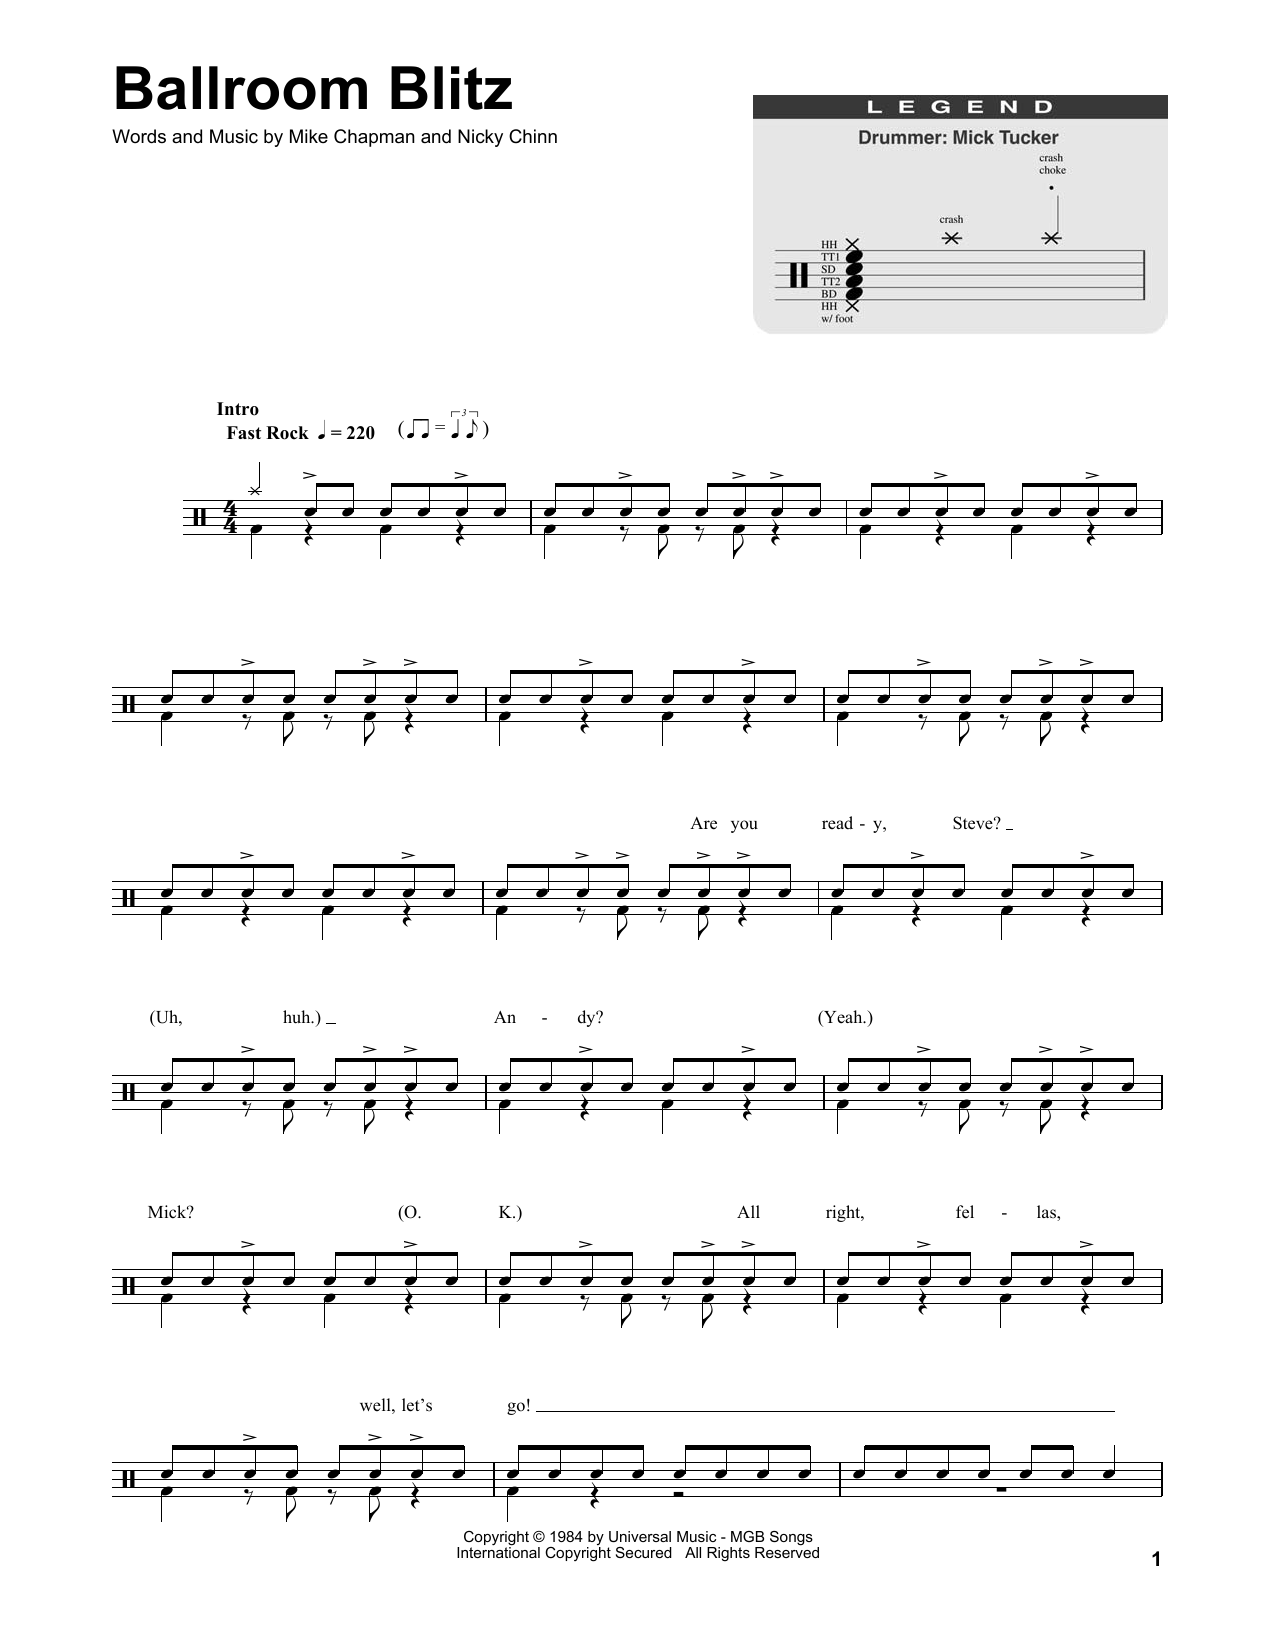 Ballroom Blitz Sheet Music